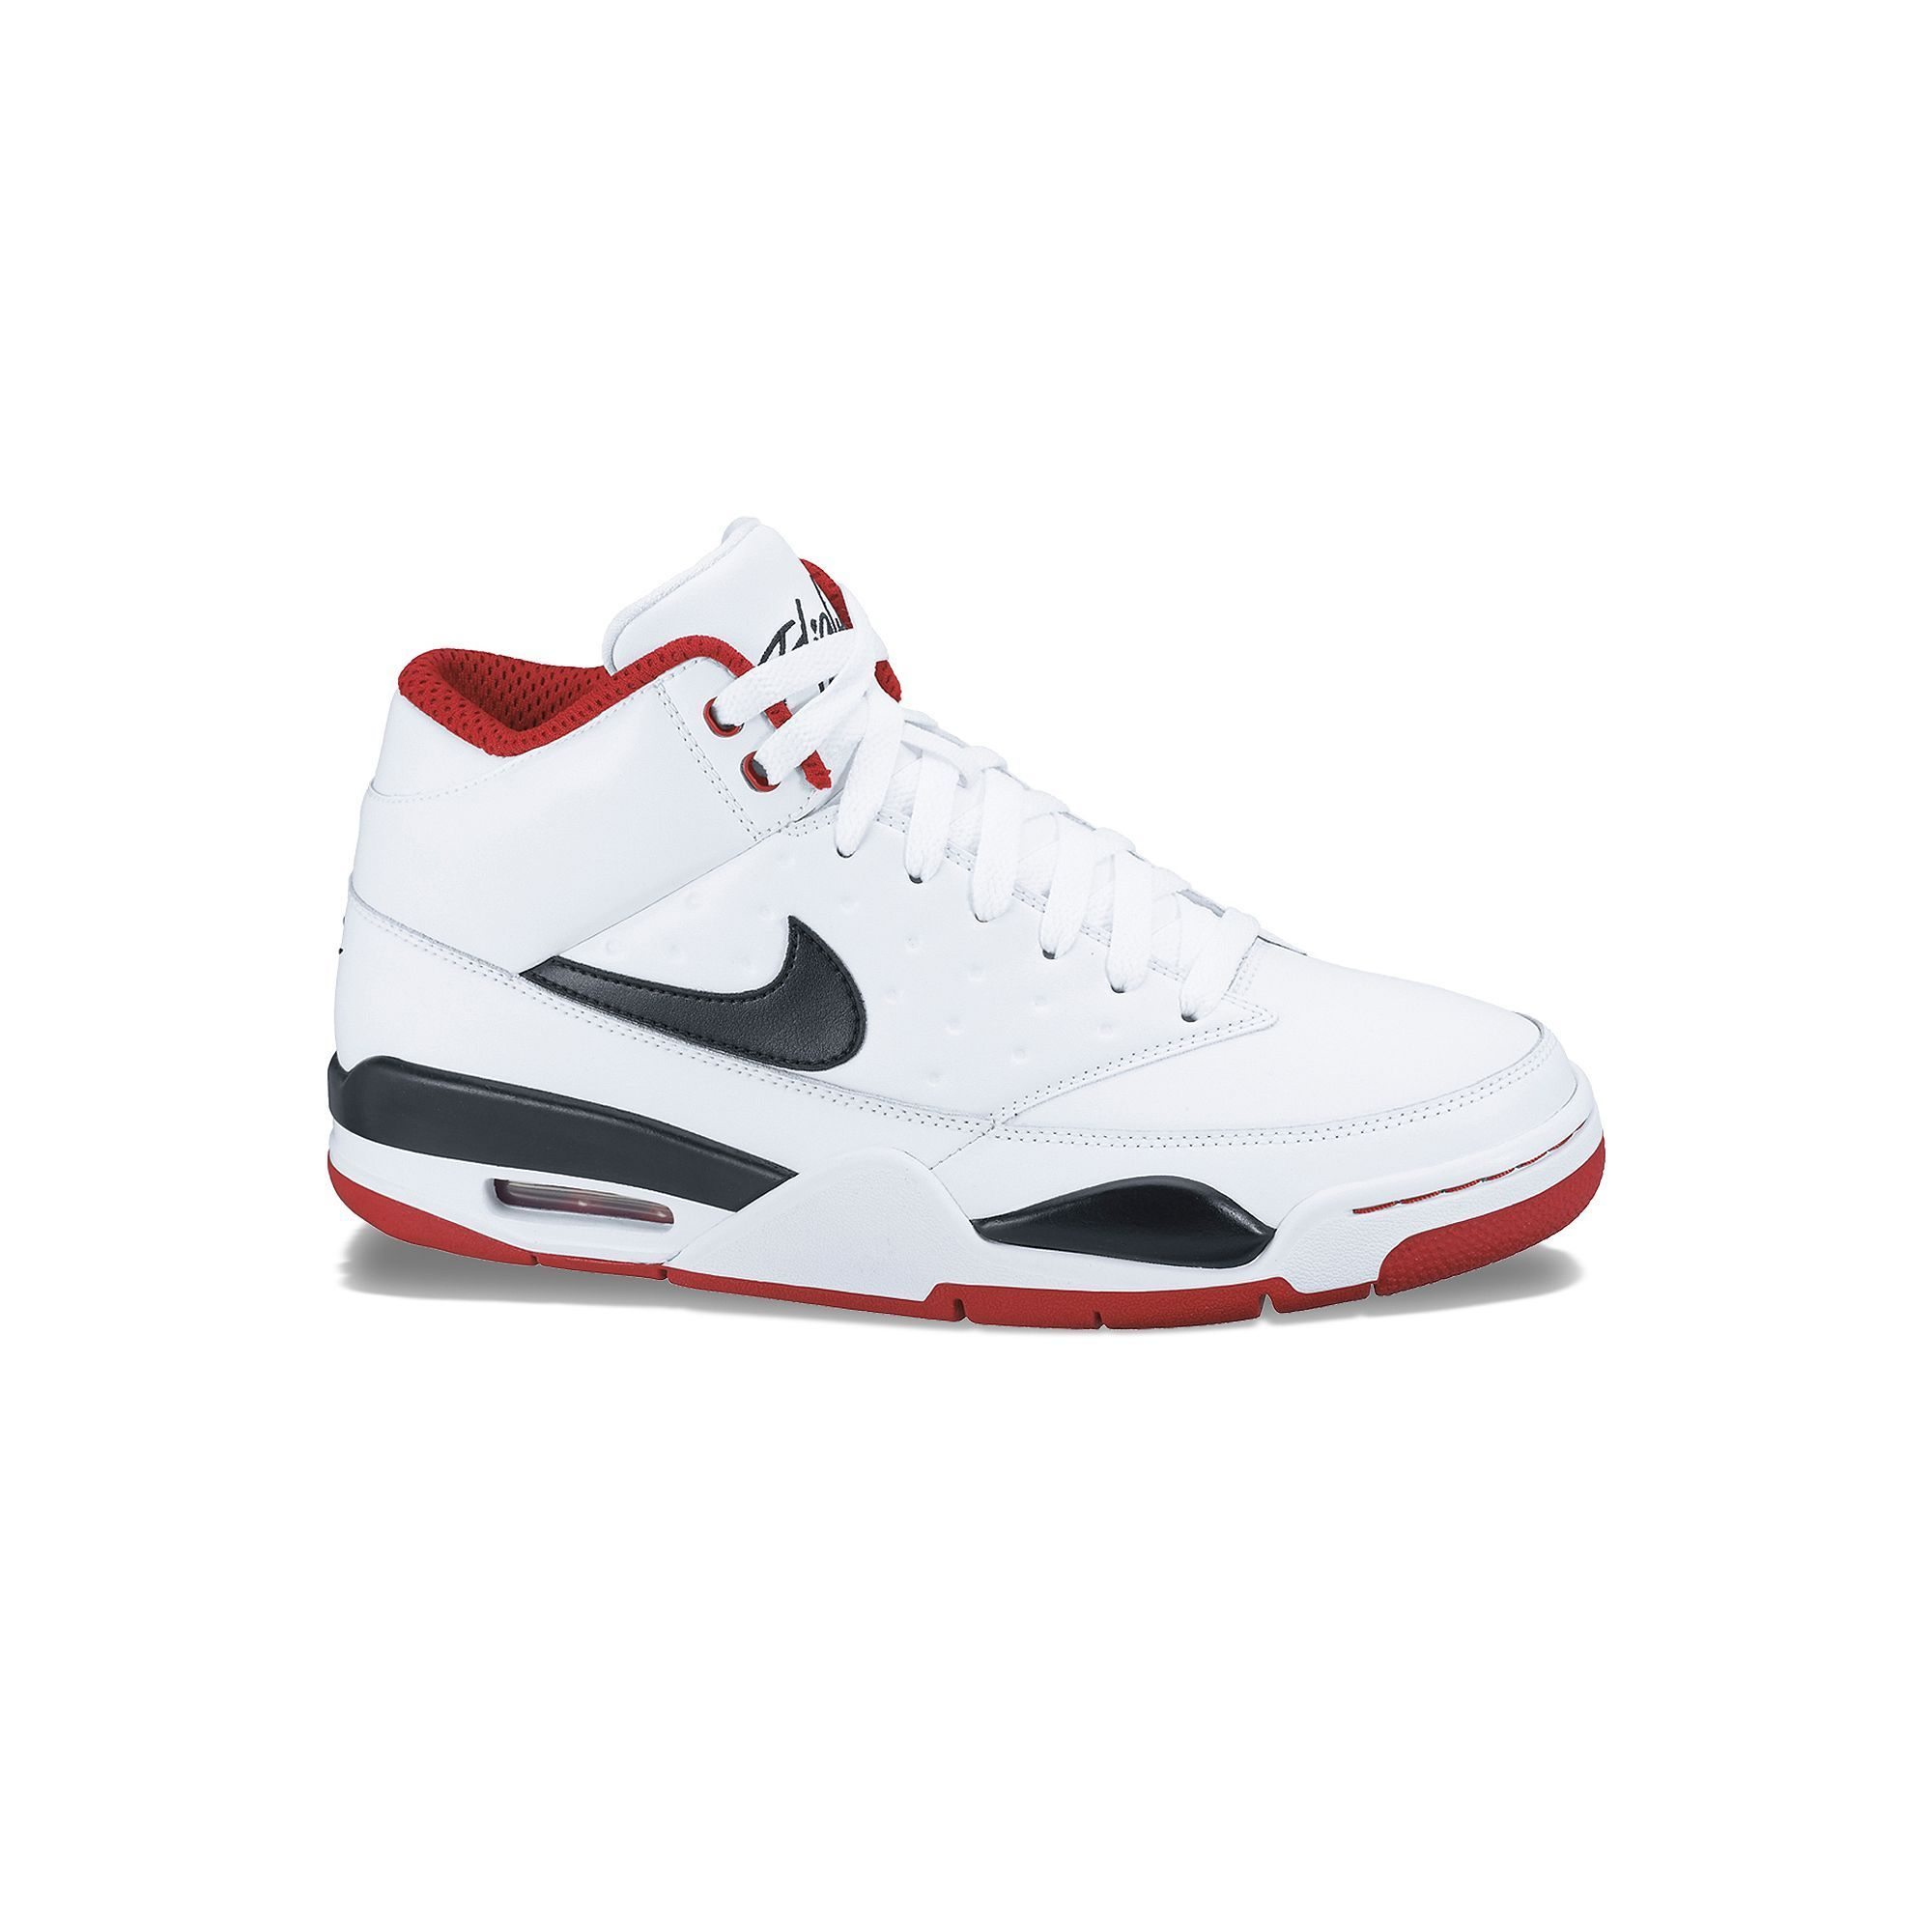 Nike Air Flight Classic Men's Basketball Shoes, Size: 10.5, White